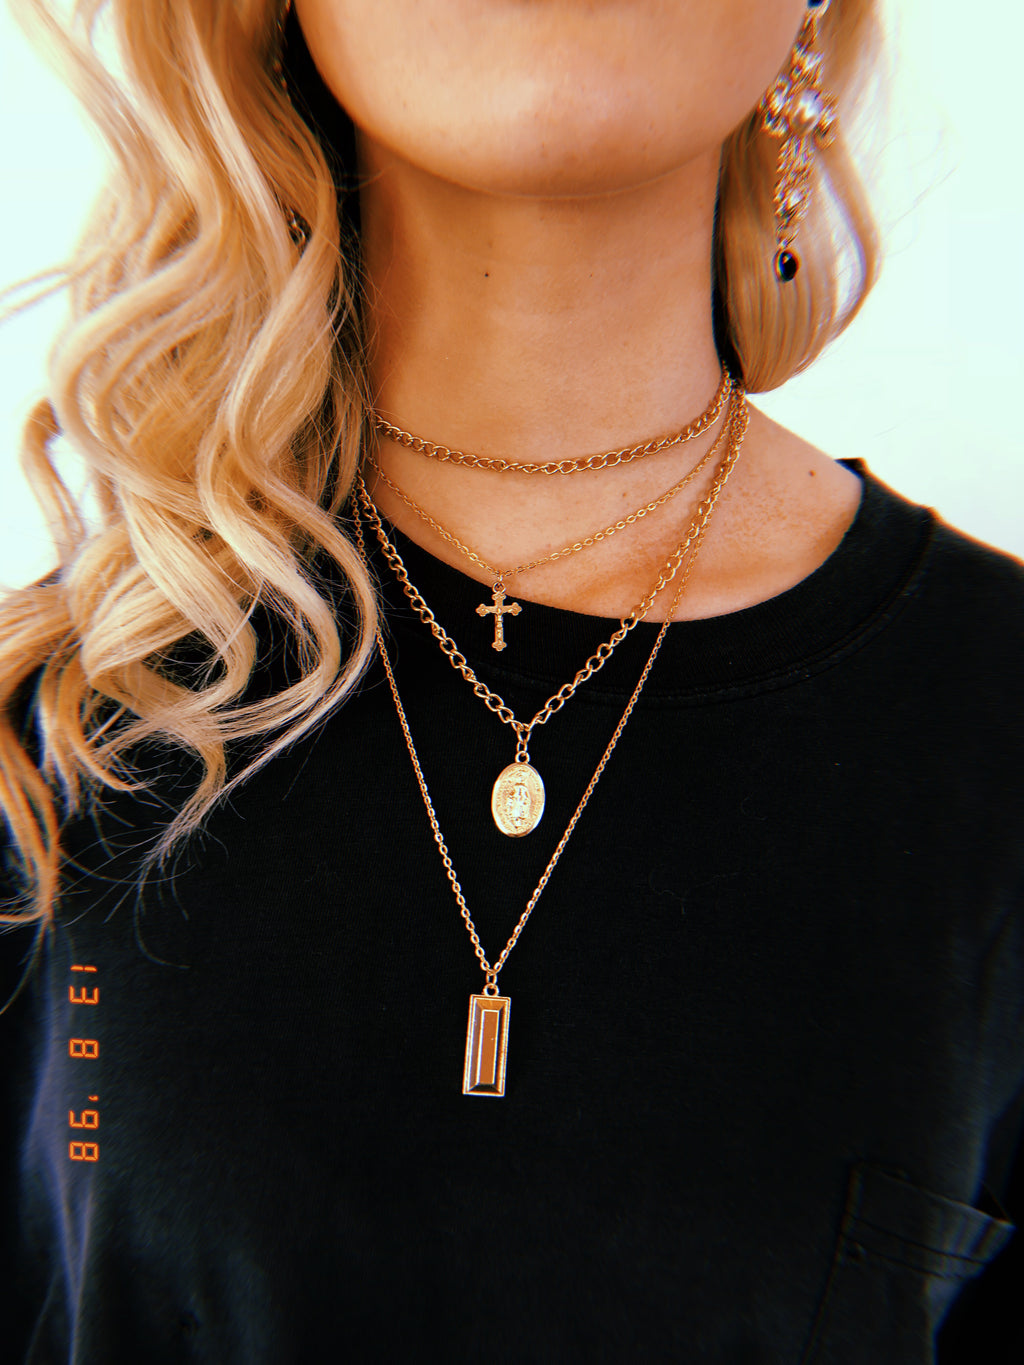 When You're Gone Necklace || Gold